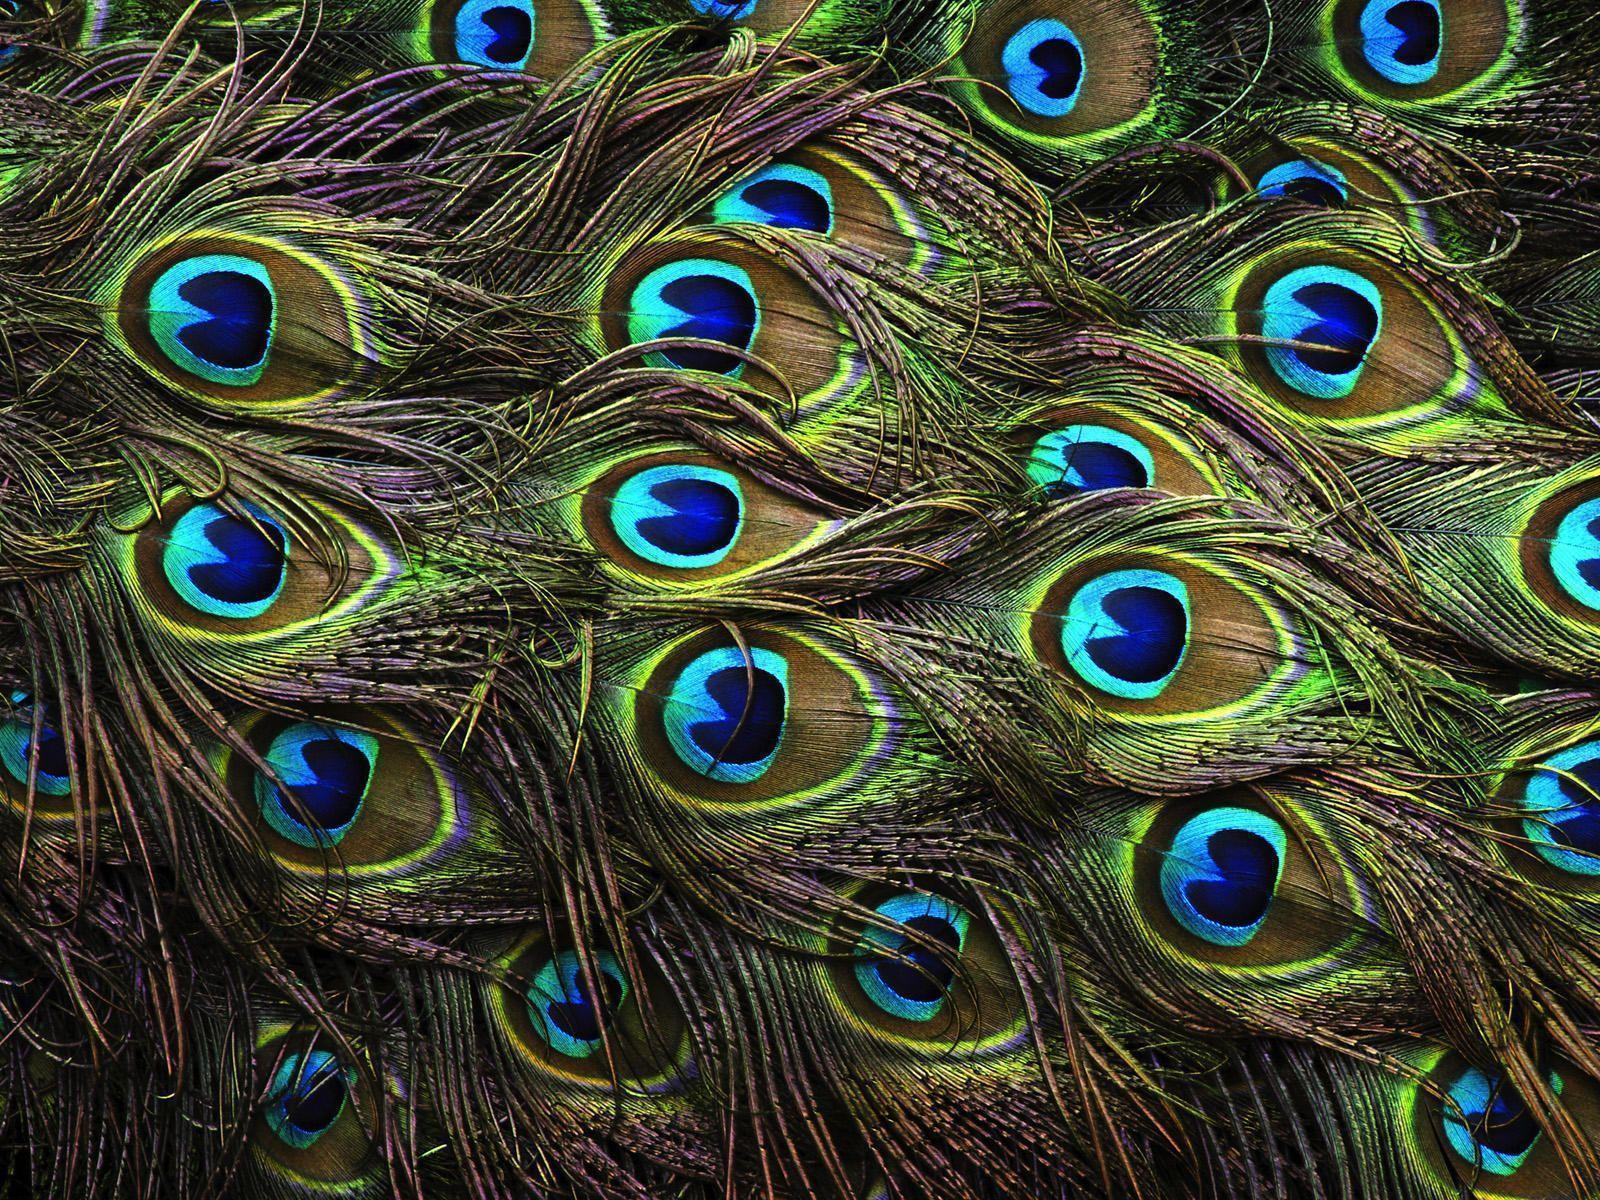 Wallpapers Of Peacock Feathers HD 2017 - Wallpaper Cave